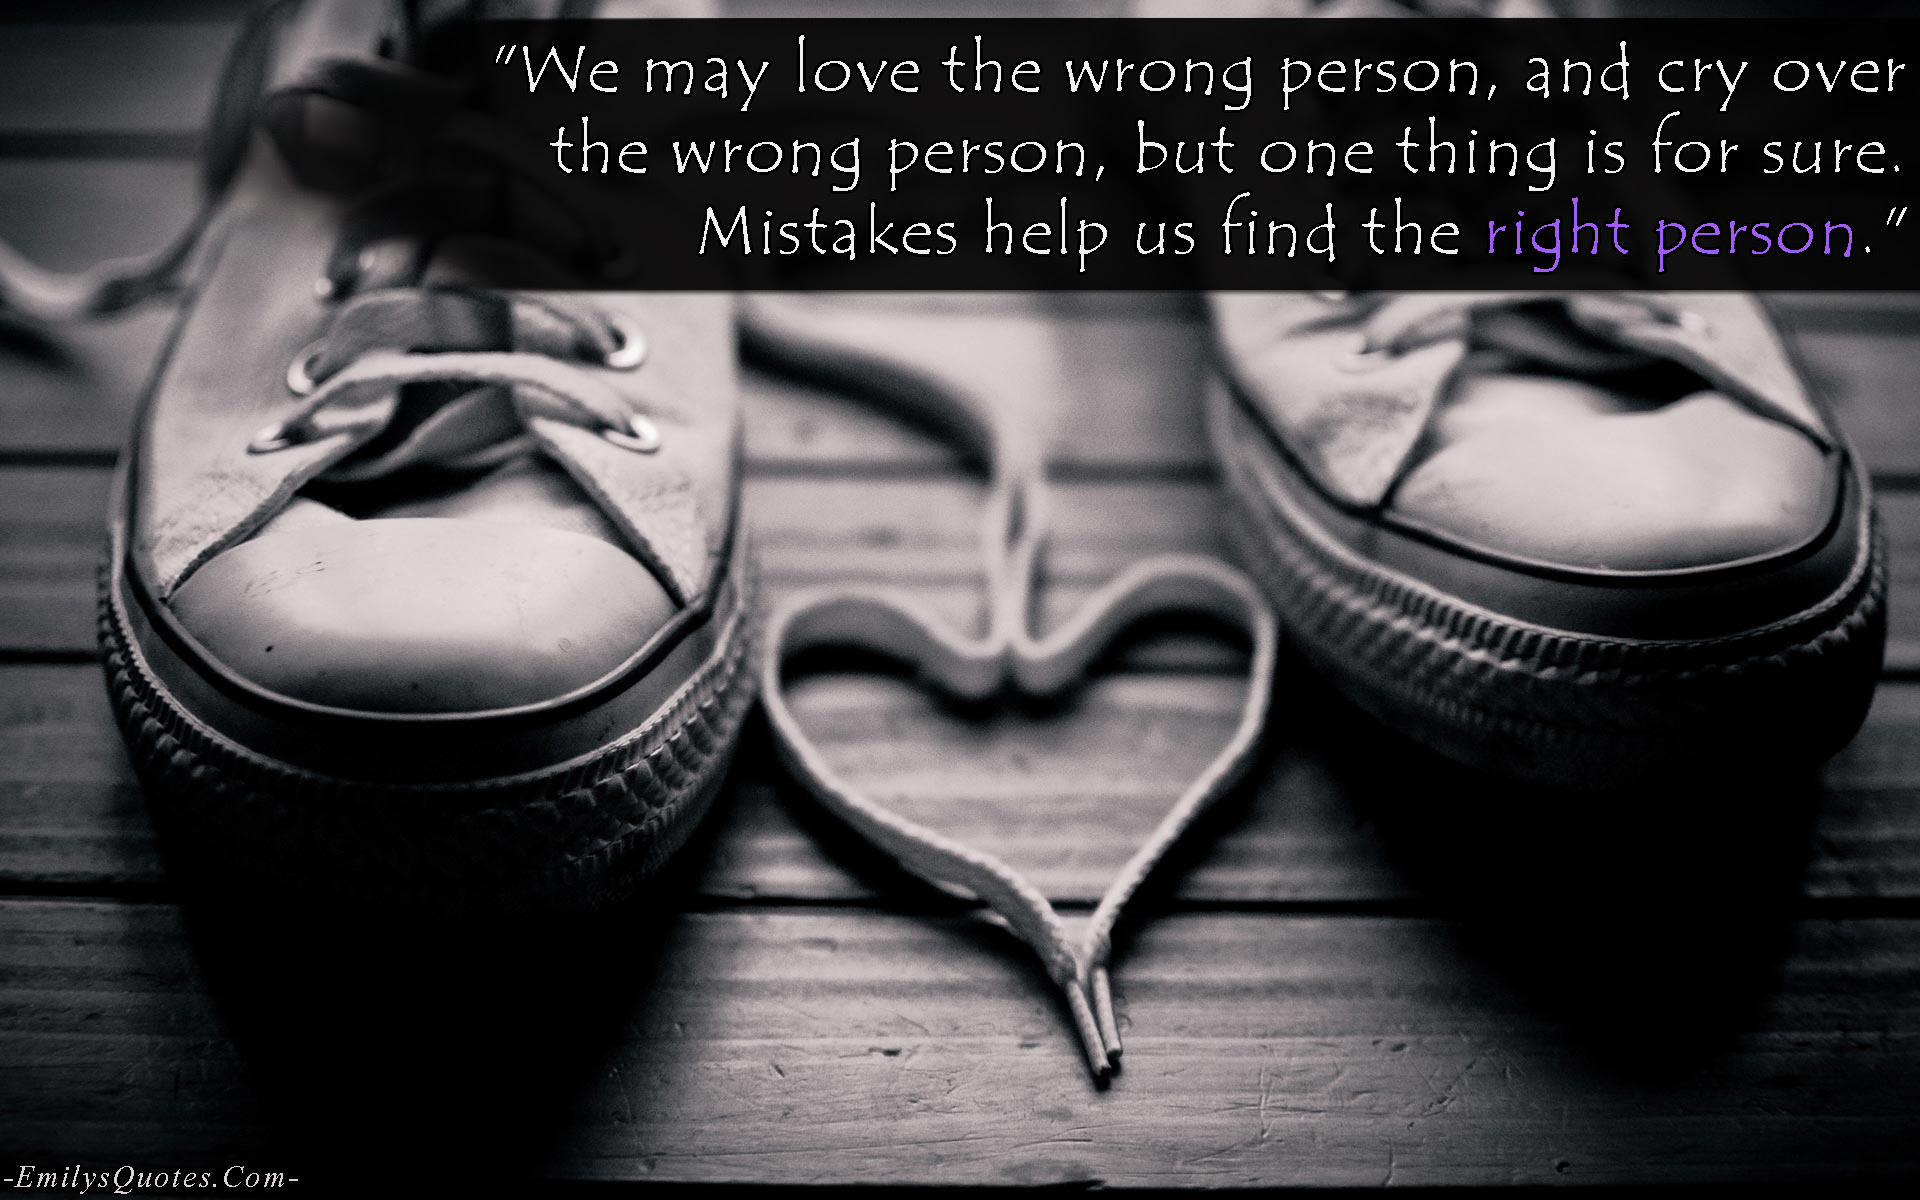 love cry mistakes sad relationship inspirational